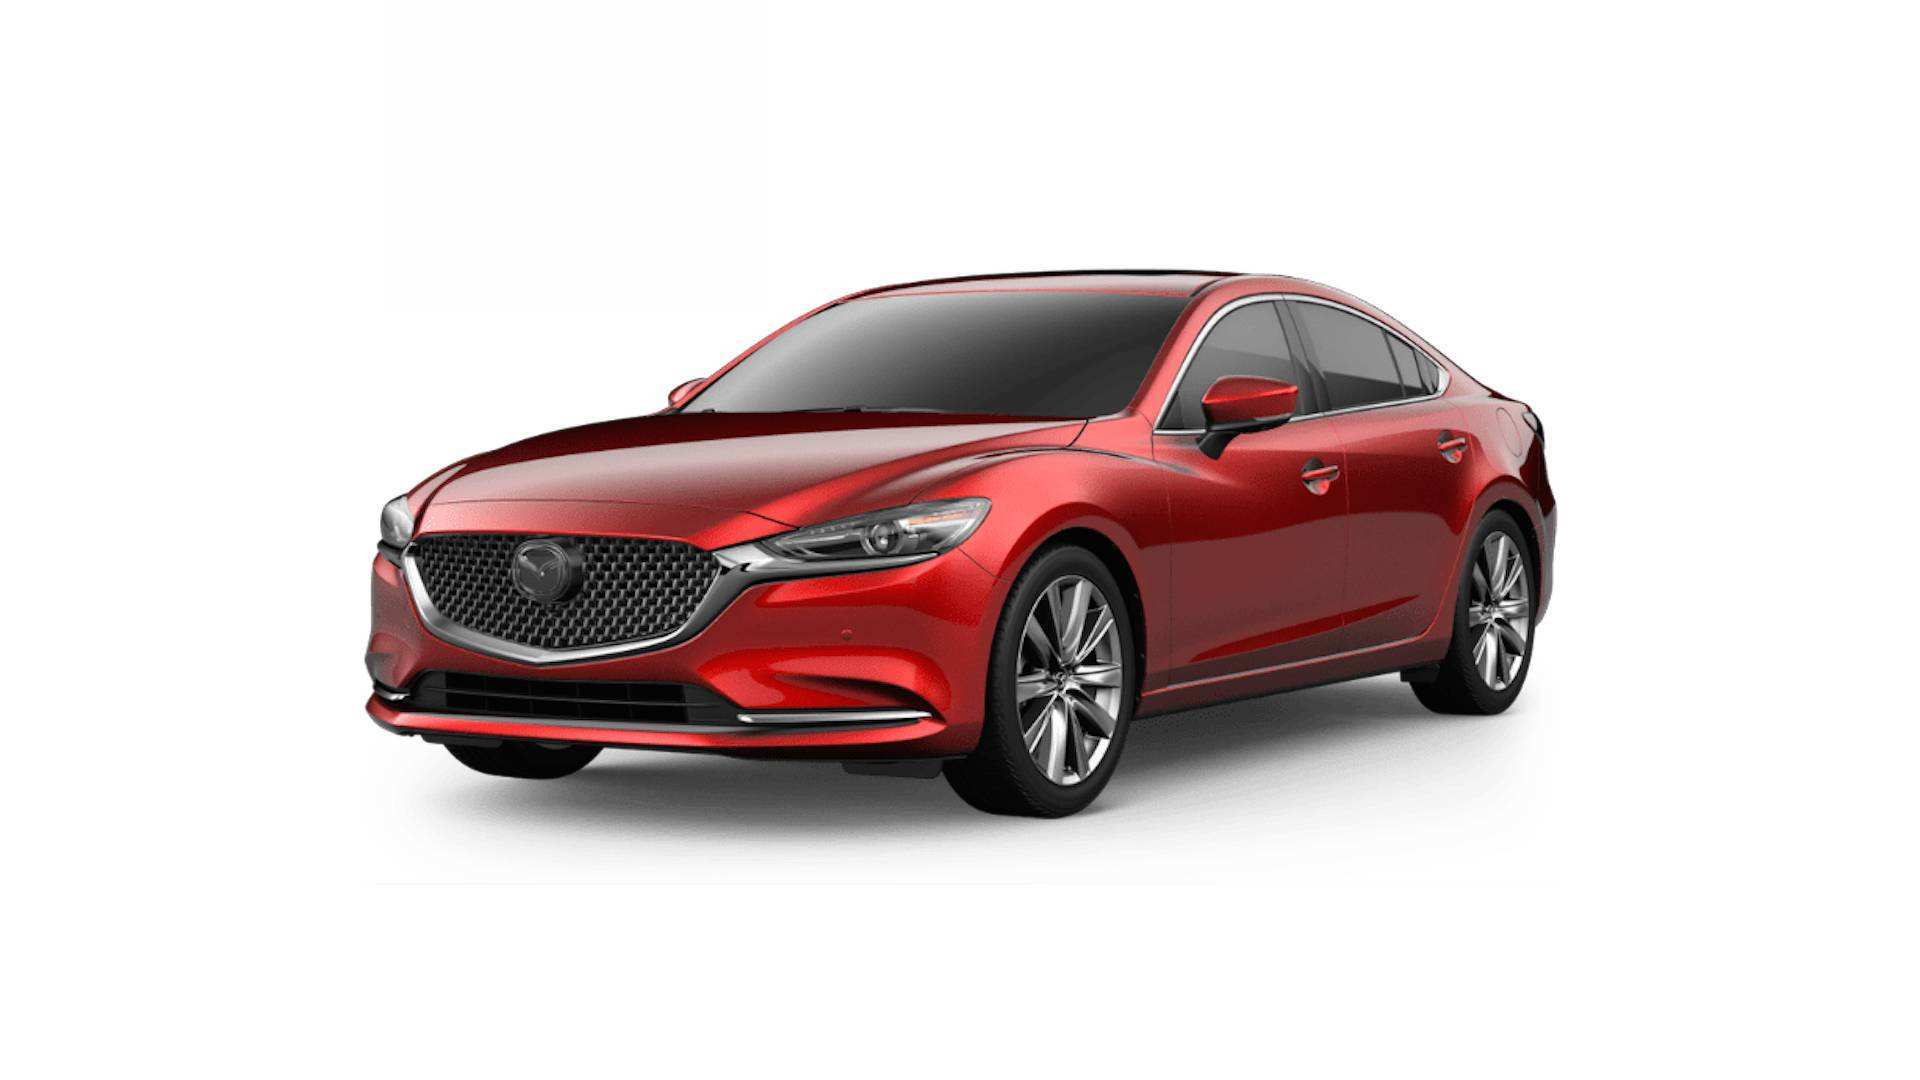 49 Concept of New 2019 Mazda 6 Spy Shots Redesign Price And Review New Concept by New 2019 Mazda 6 Spy Shots Redesign Price And Review